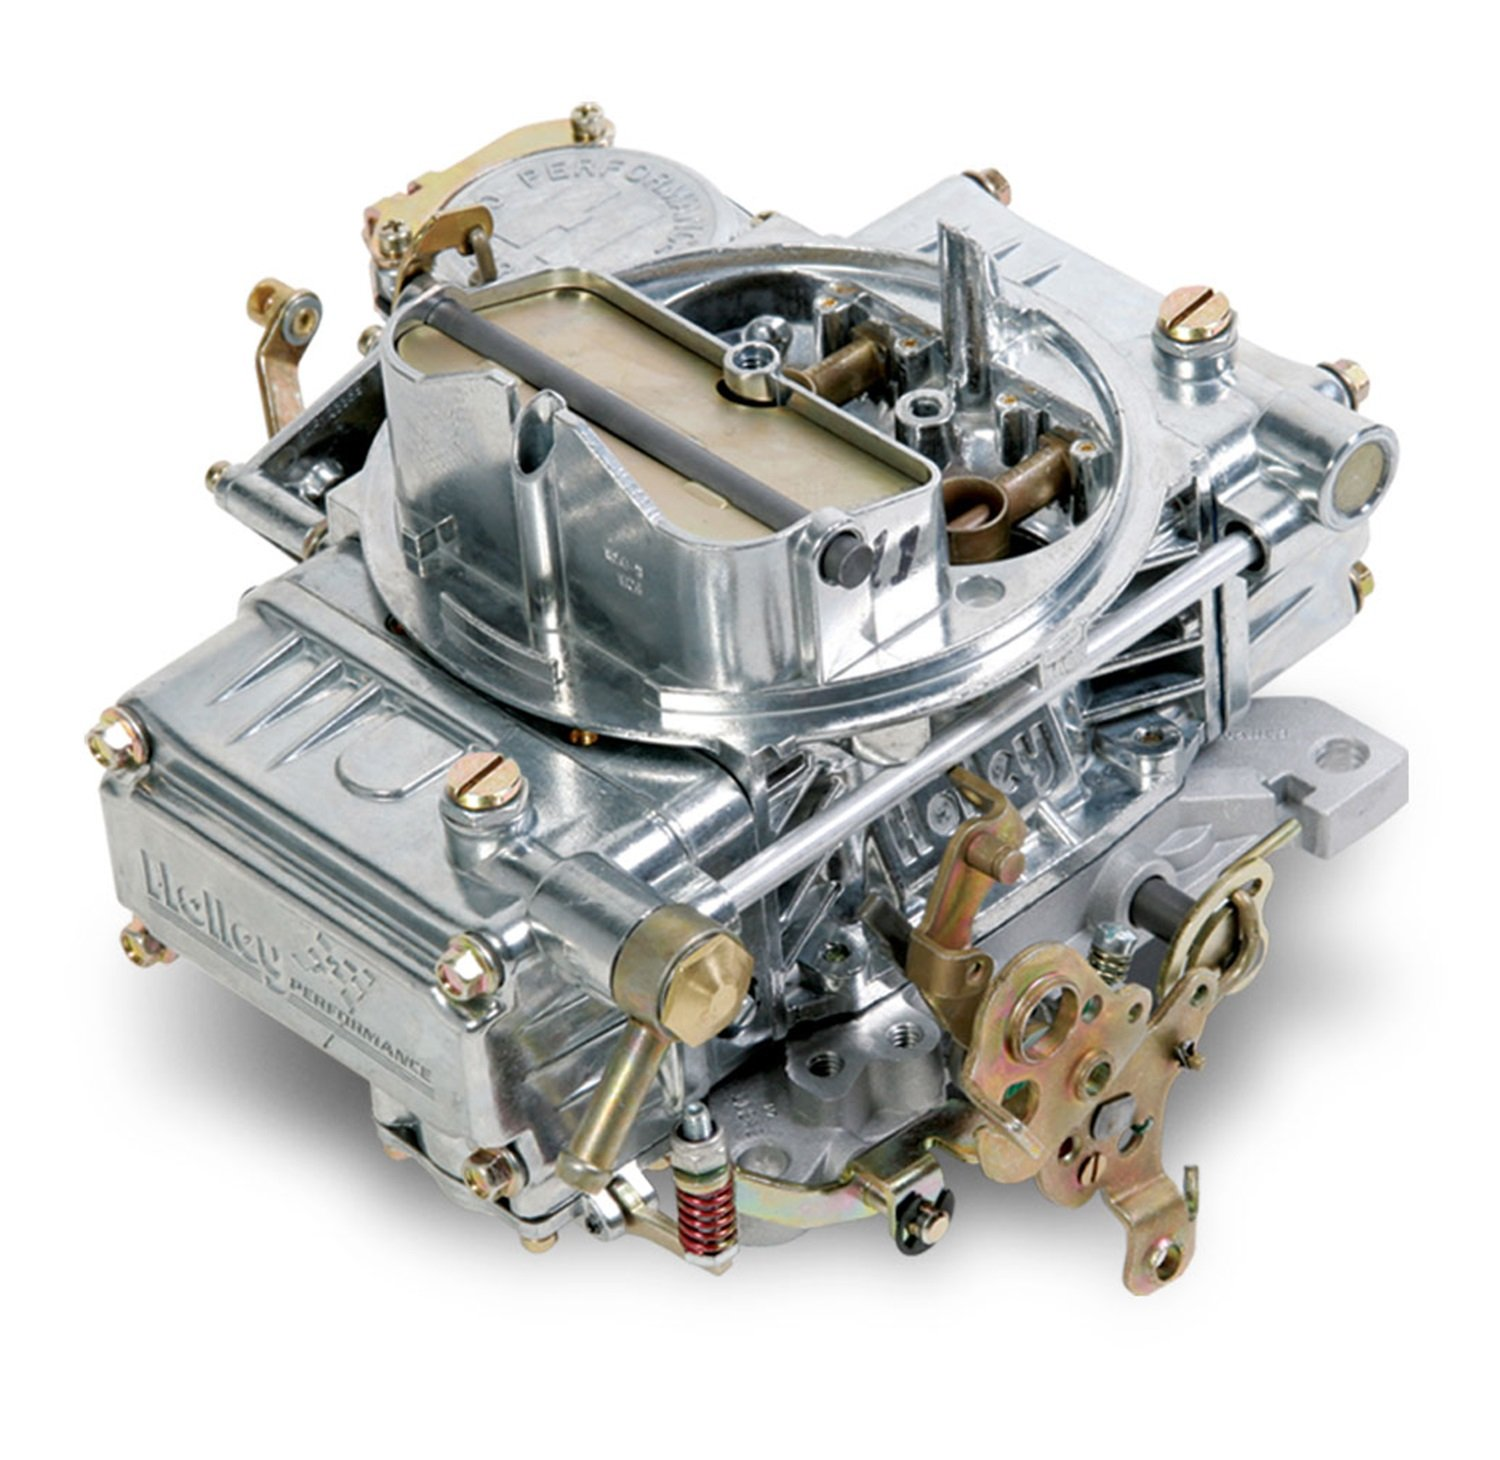 Holley 0-1850sa Aluminum 600 CFM Four-Barrel Street Carburetor